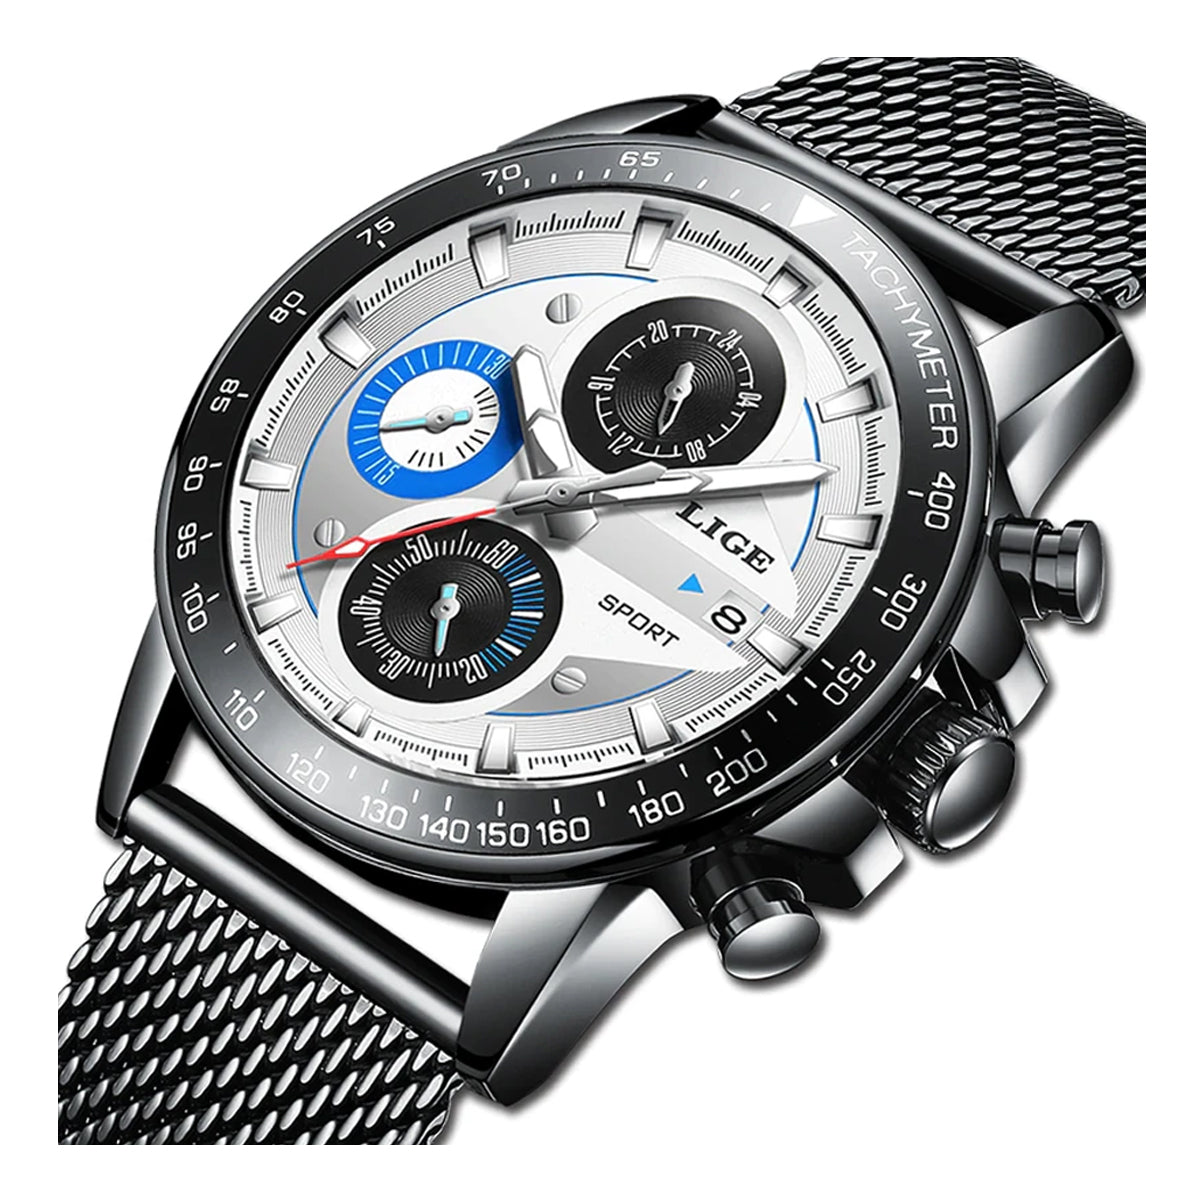 Quality Auto Date & Complete Calendar Waterproof Wrist Watch for Men